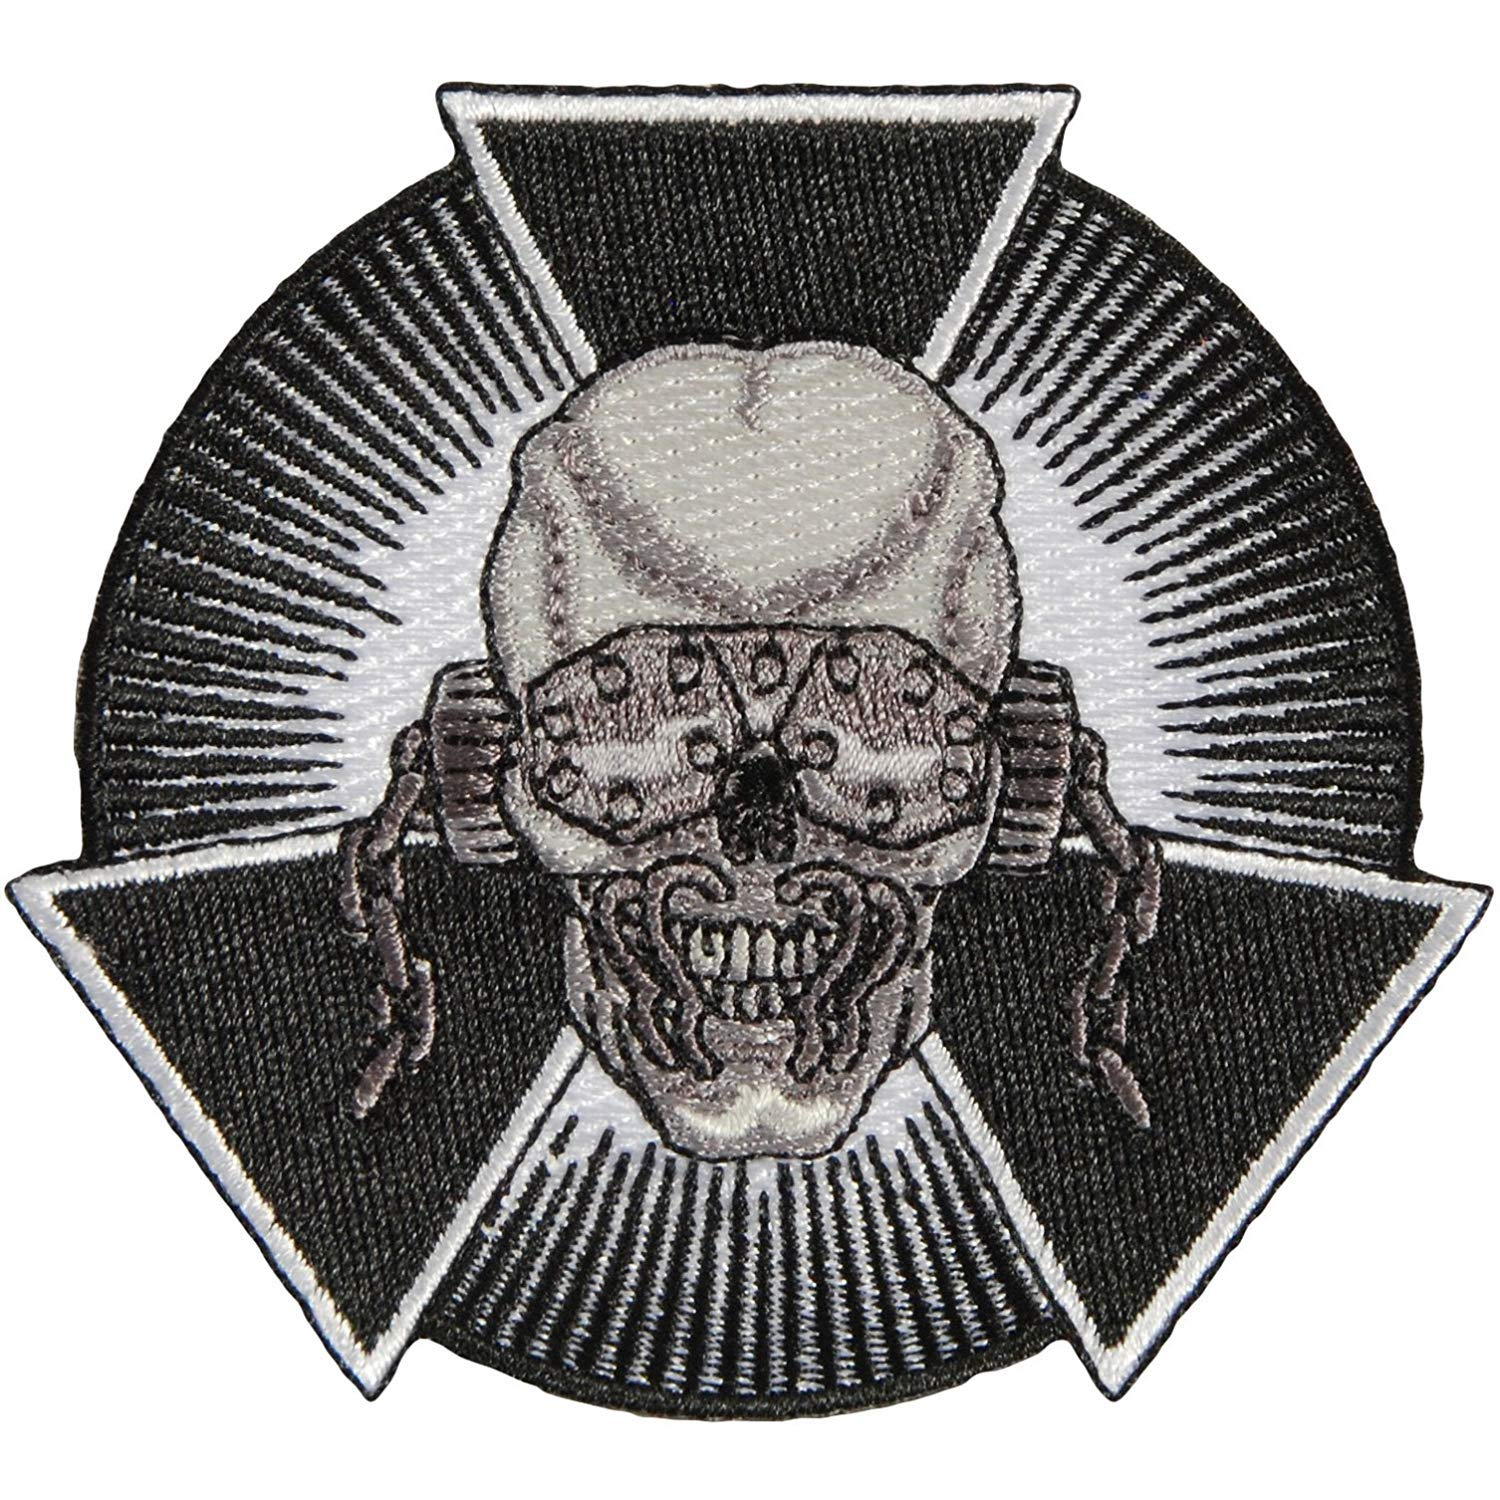 MEGADETH Skull Burst, Officially Licensed Classic Rock Artwork, High Quality Iron-On / Sew-On, 3' x 3' Embroidered PATCH PARCHE 3 x 3 Embroidered PATCH PARCHE Officially Licensed & Trademarked Products P-4250